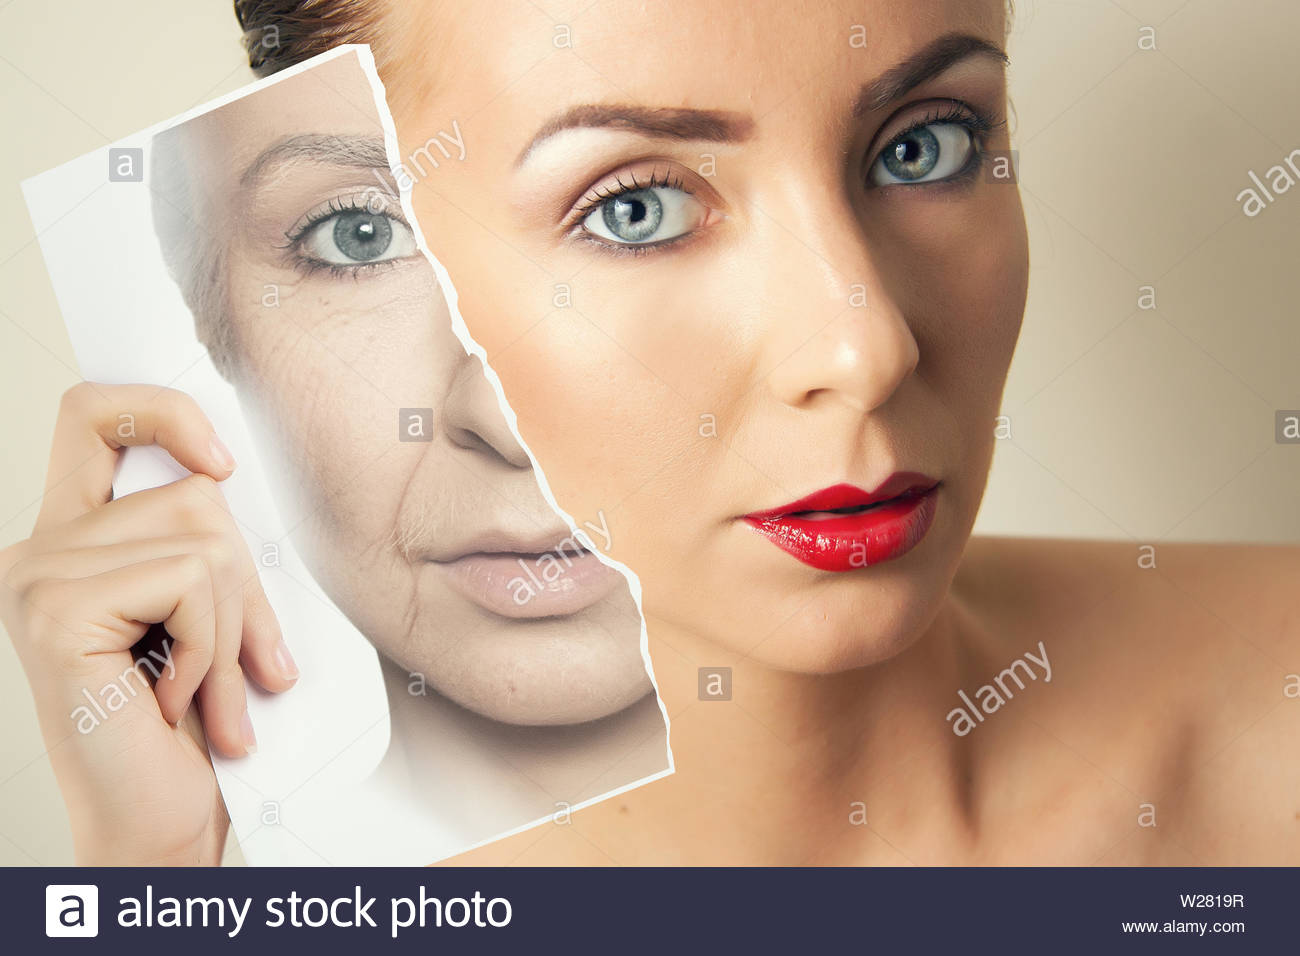 aging problems  of face skin, comparative portrait of young and old skin - Stock Image